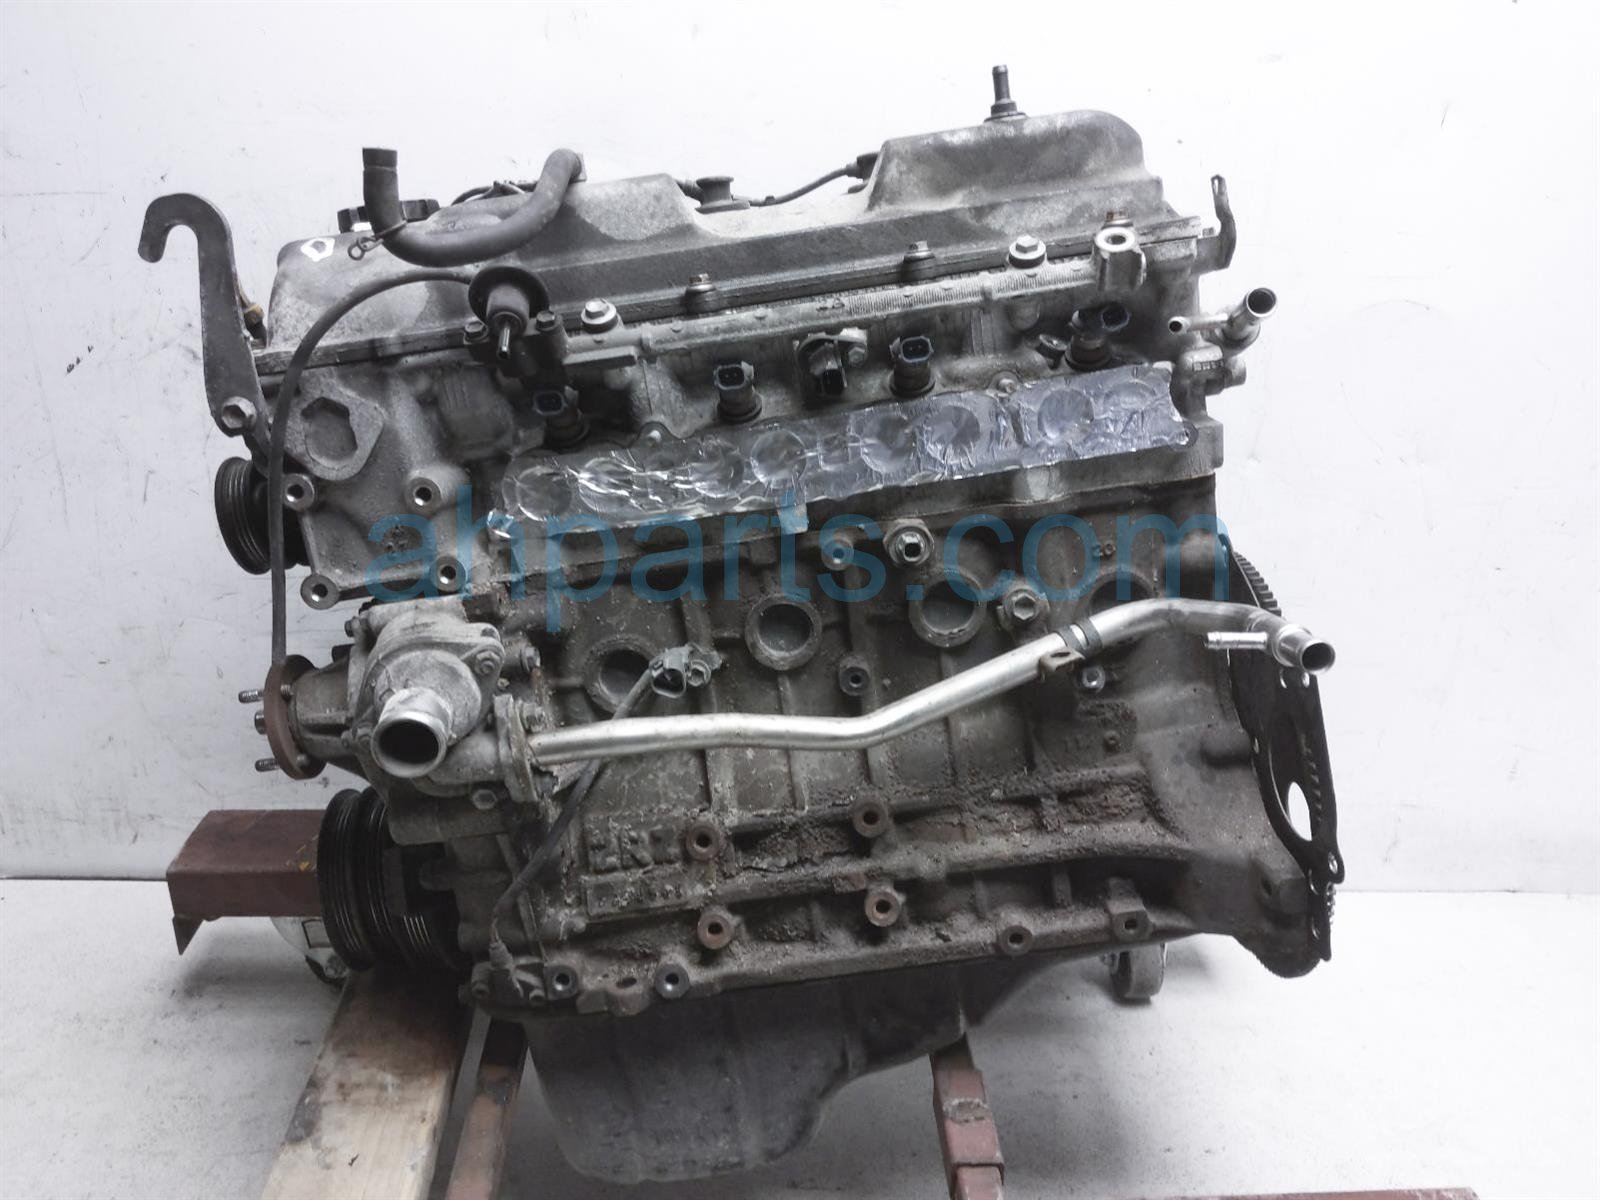 2000 Toyota Tacoma Motor / Engine = 173k Miles   19000 75331 Replacement